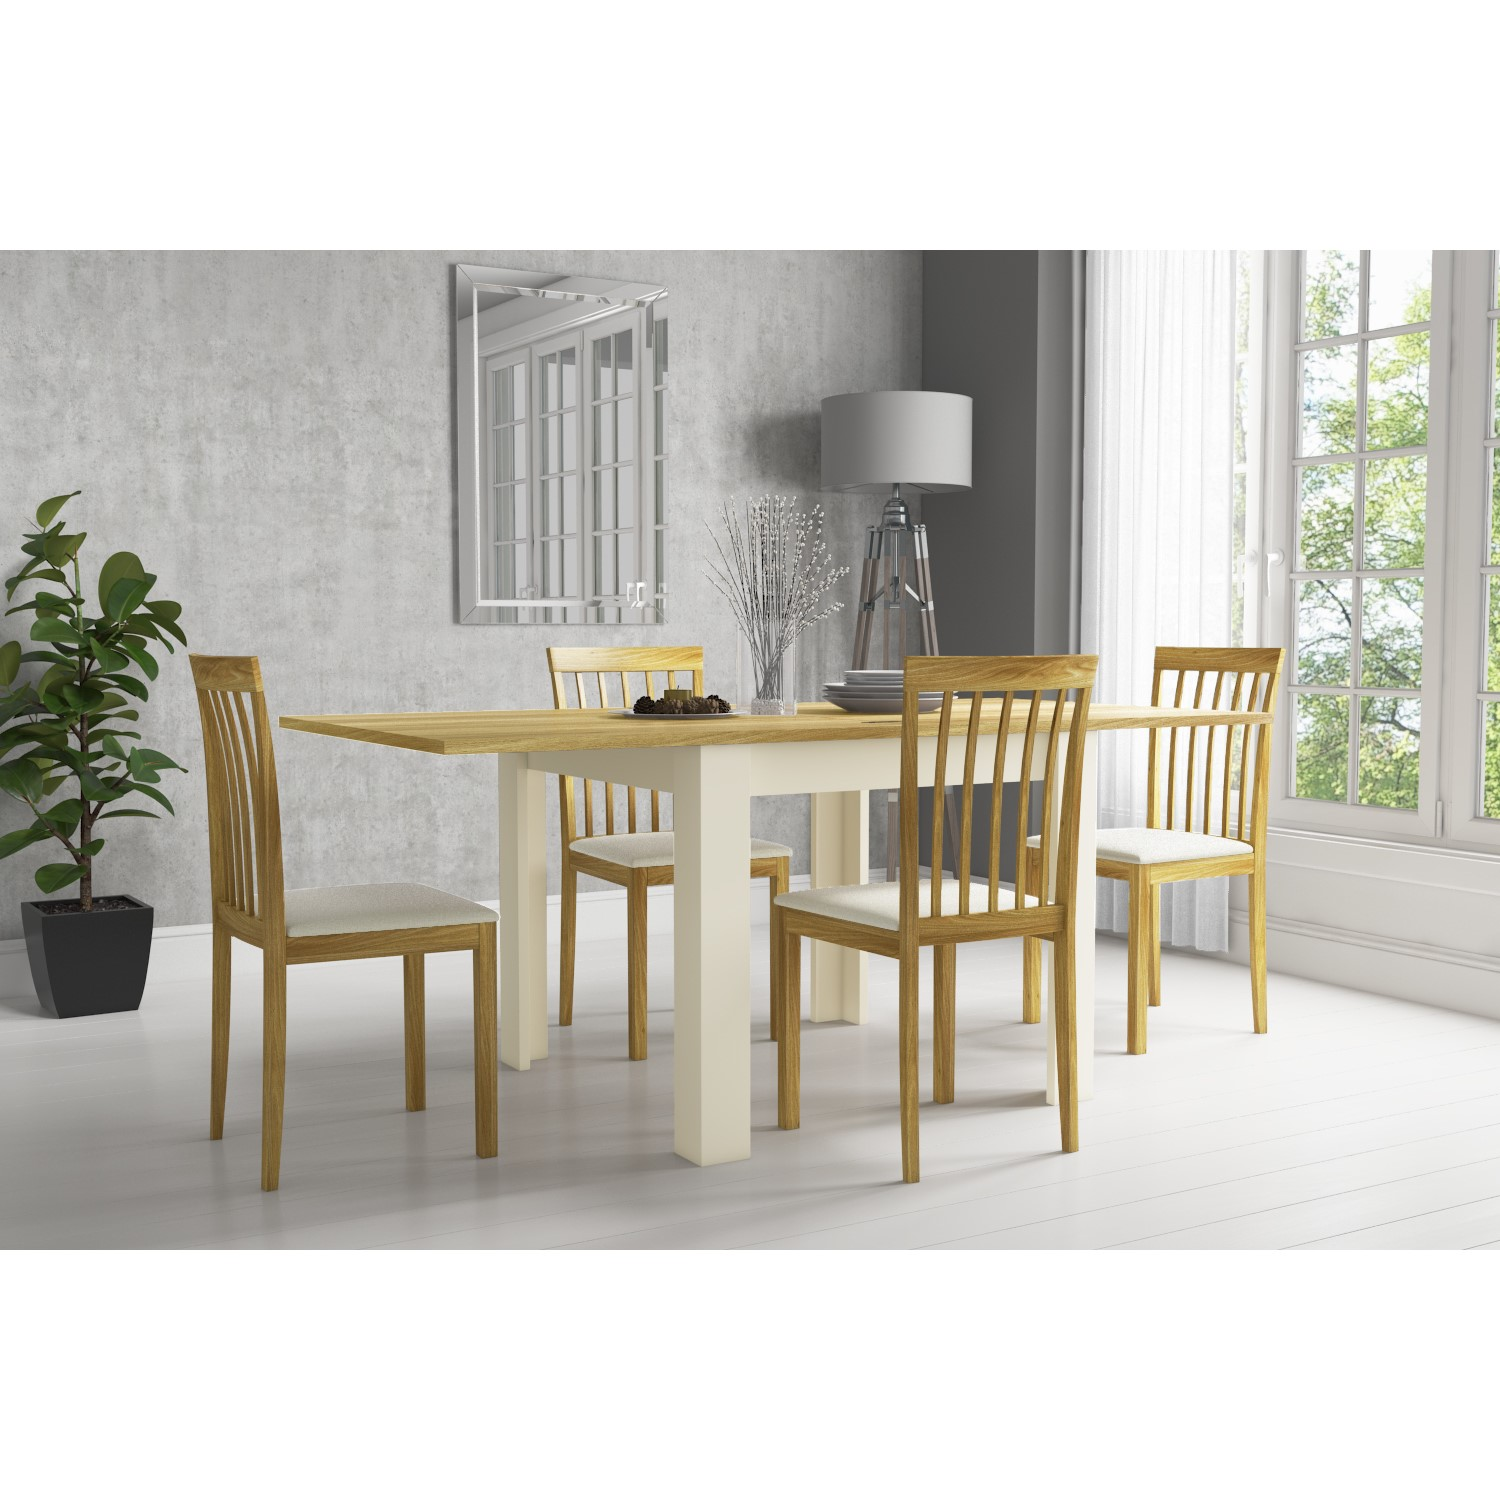 Picture of: Cream Flip Top Dining Table With Oak Top 4 Dining Chairs New Town Furniture123